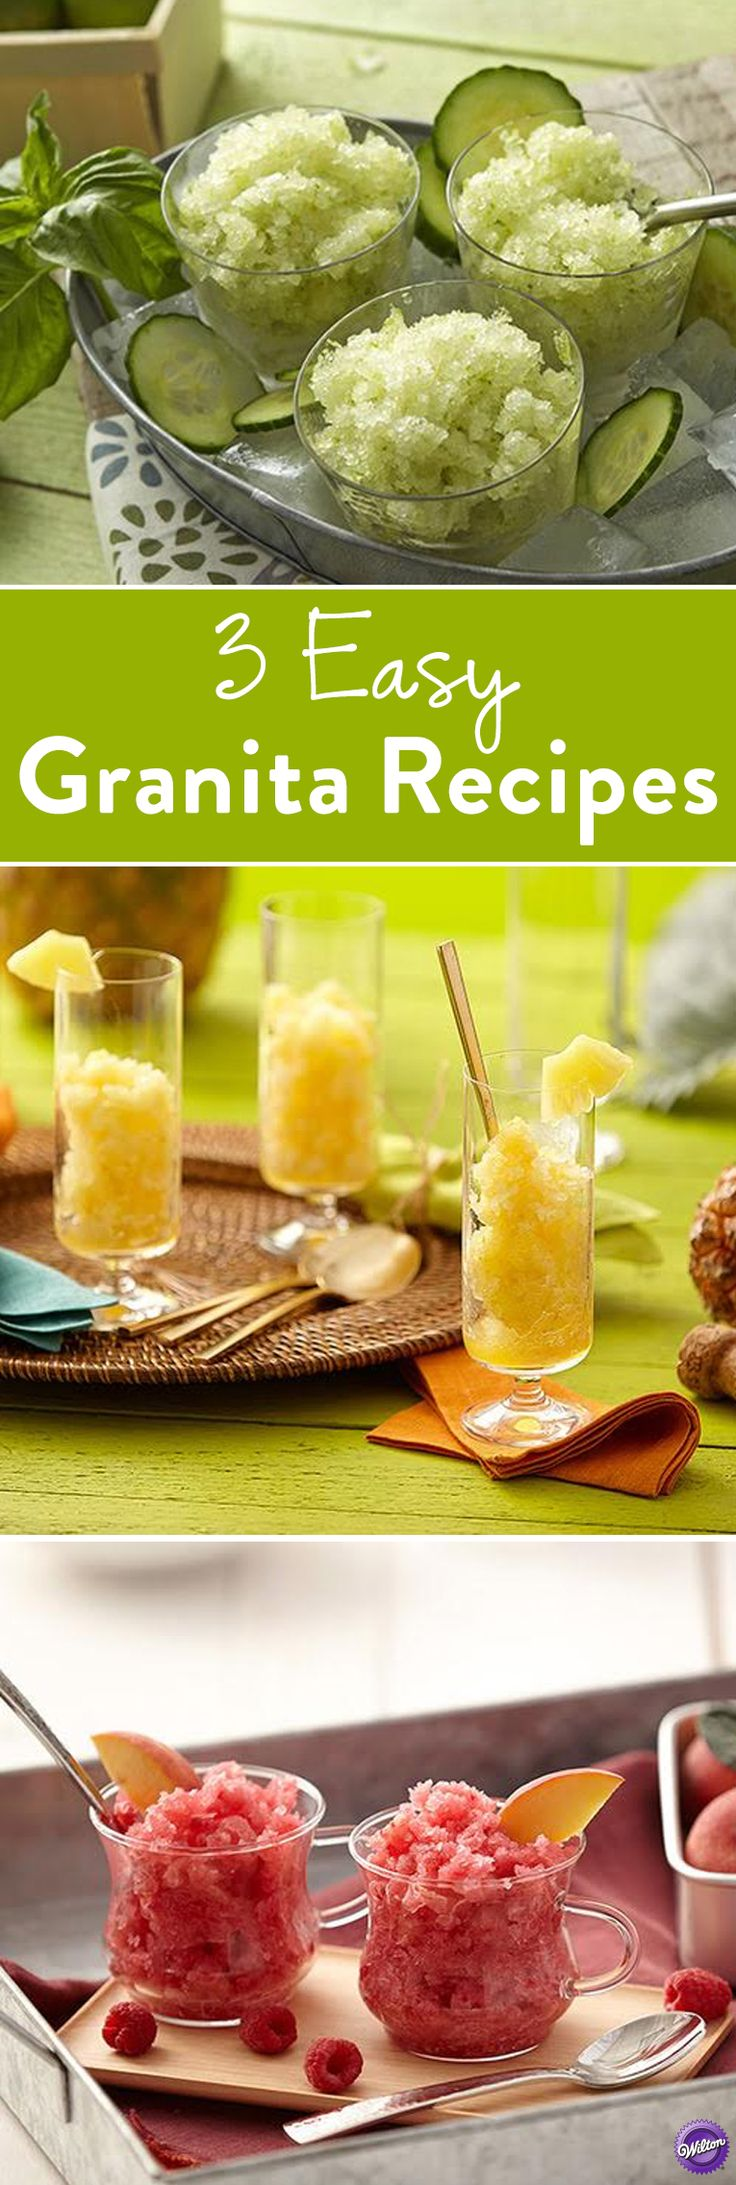 3 Easy Granita Recipes - Stay cool during the warm weather with an icy, thirst-quenching frozen granita! These three easy granita recipes - Pineapple Mimosa Granita, Basil Cucumber Granita, and Raspberry Peach Granita will help you cool down this summer!